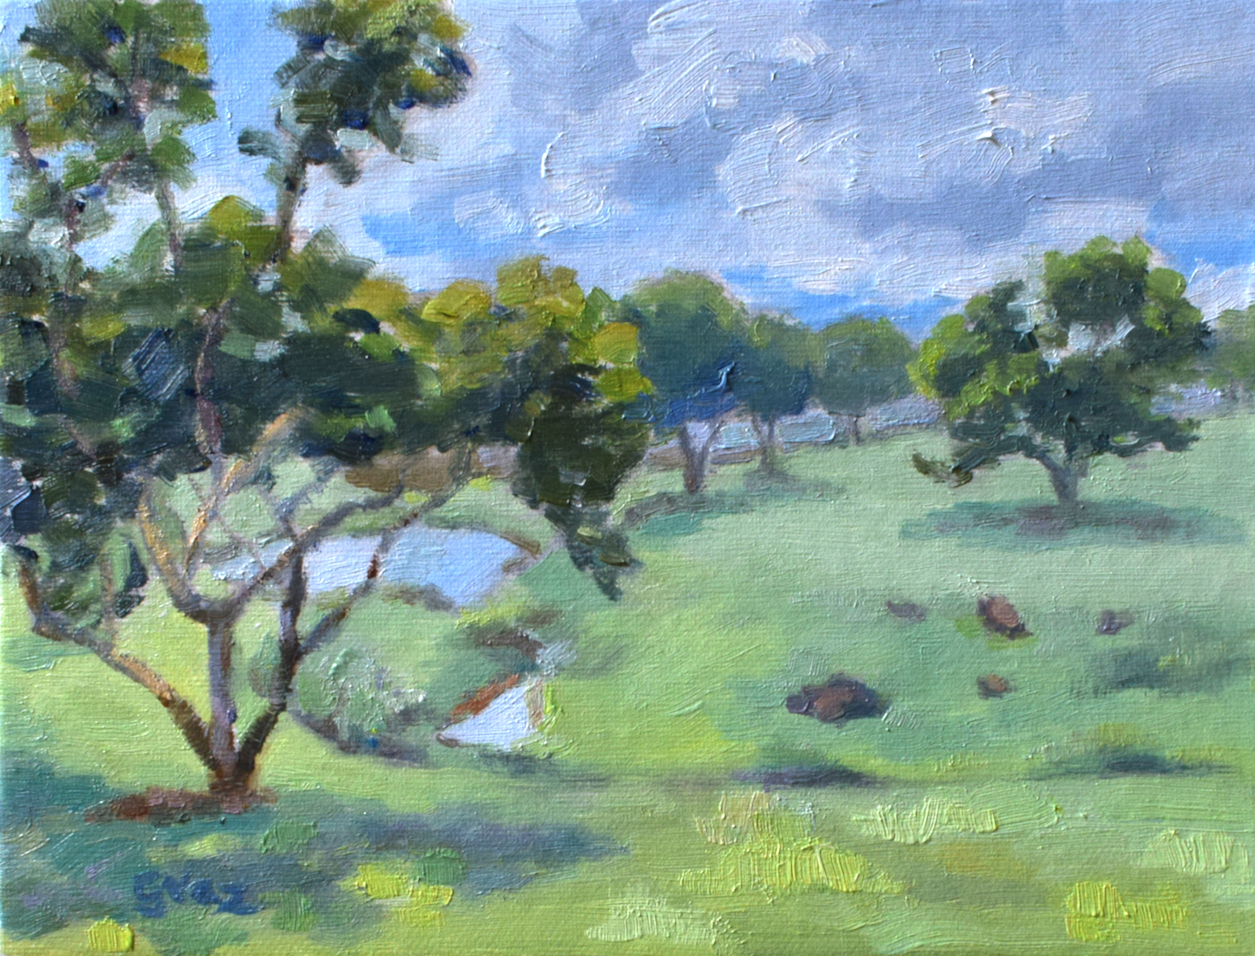 Verão no cerrado, oil on canvas, 15 x 20 cm, 2020